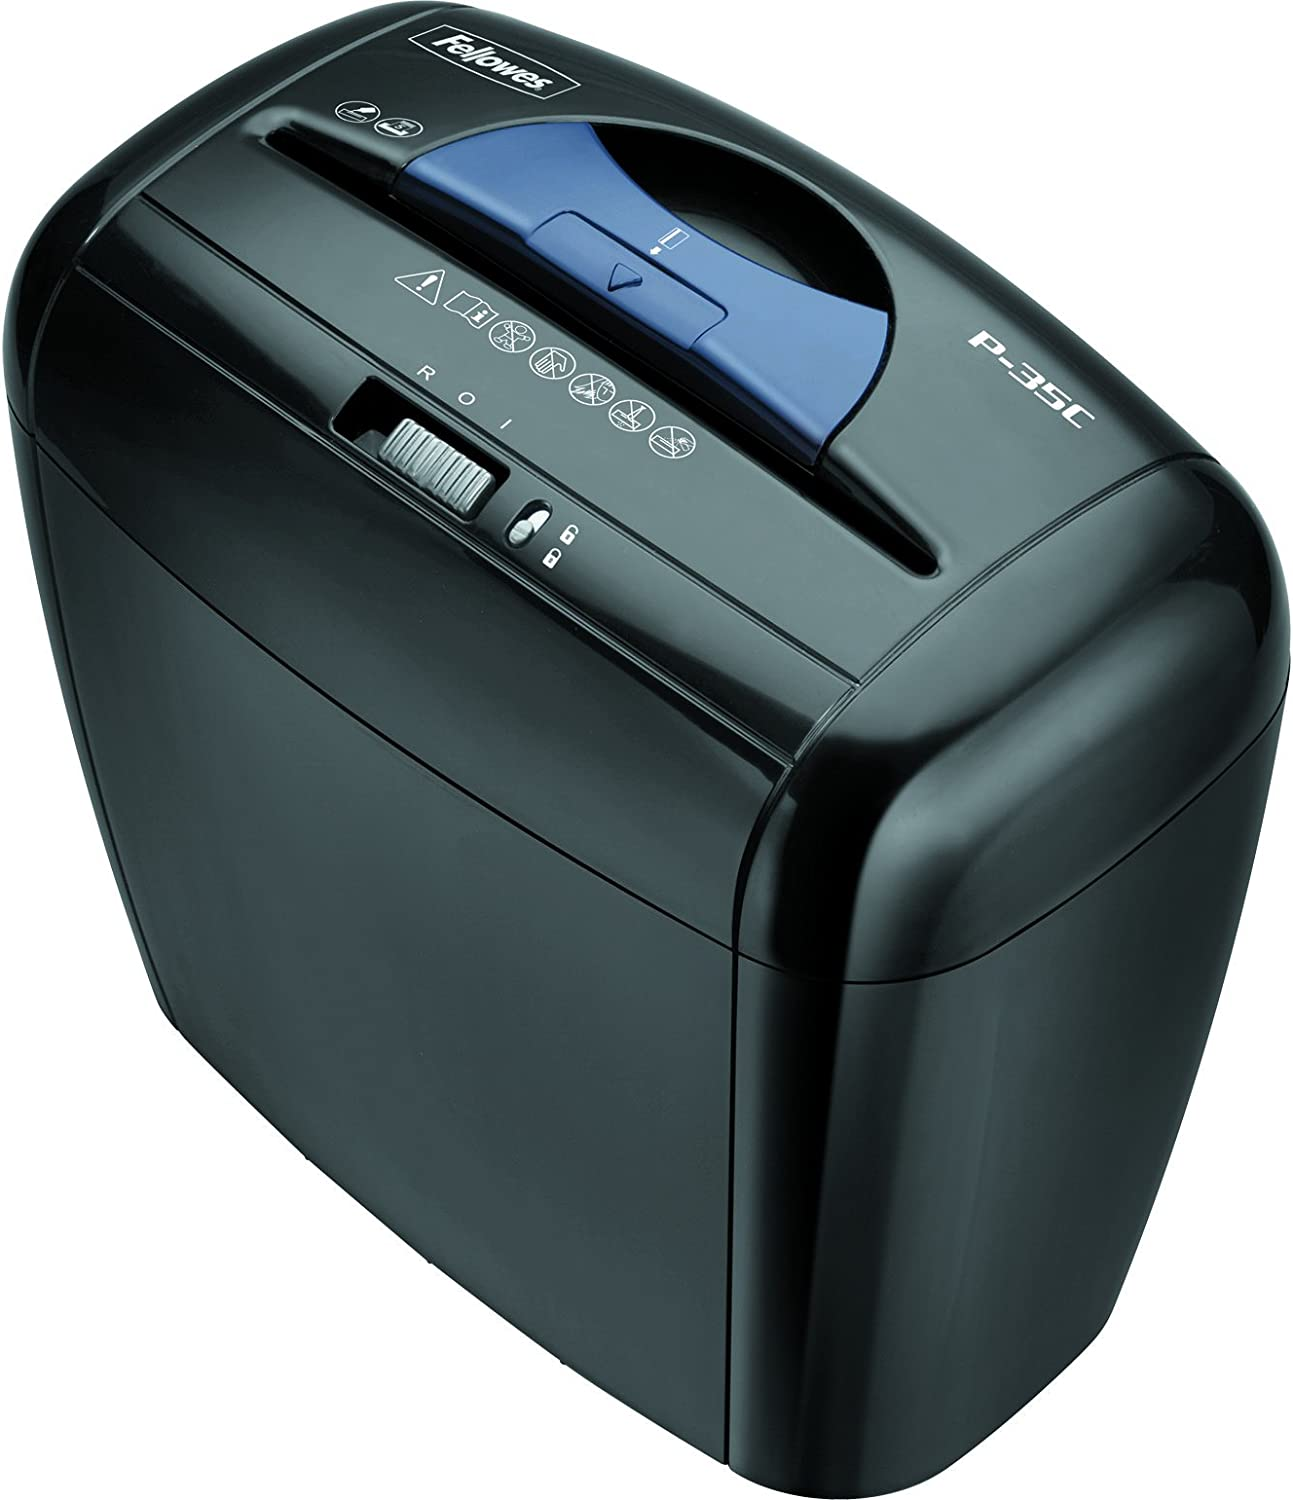 Fellowes Powershred P-35C 5-Sheet Cross-Cut Paper and Credit Card Shredder with Safety Lock